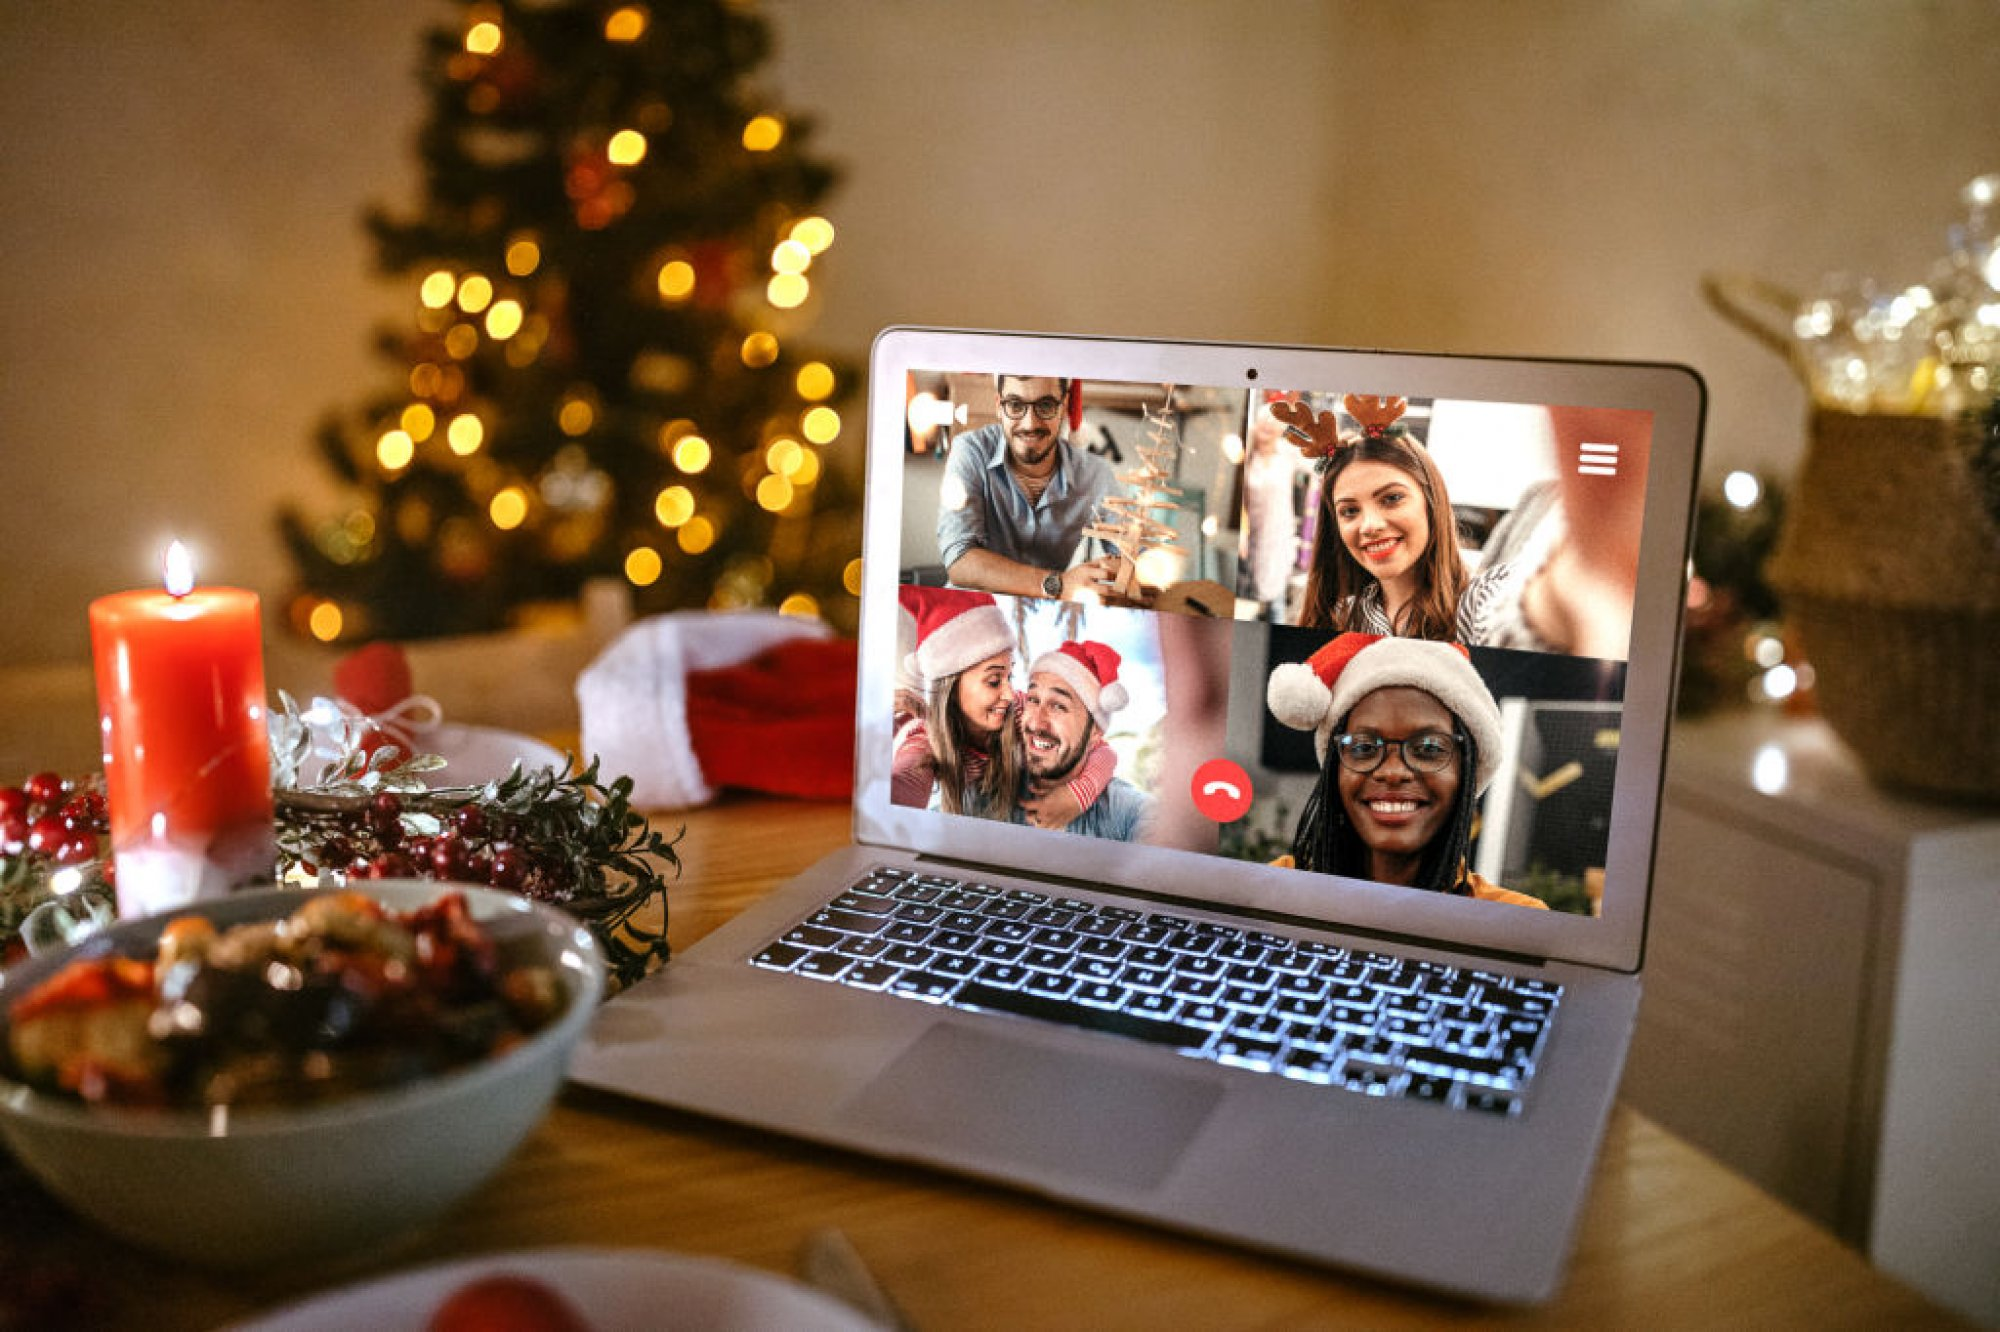 Christmas Giveaway 2021 Celebrities 5 Creative Ways To Host An Amazing Office Holiday Party On Zoom Inc Com